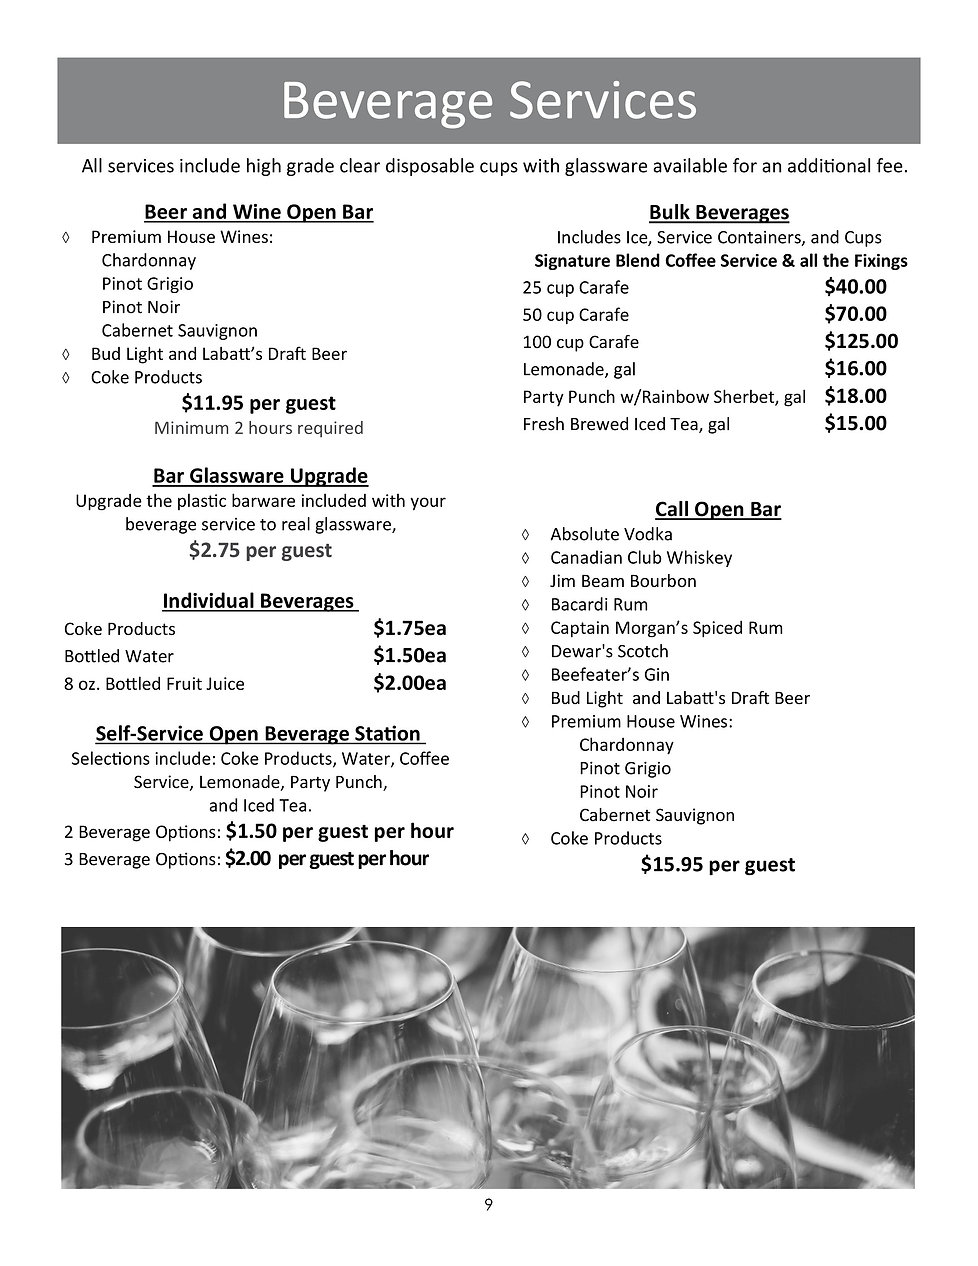 Trout town catering NEW-page-009.jpg